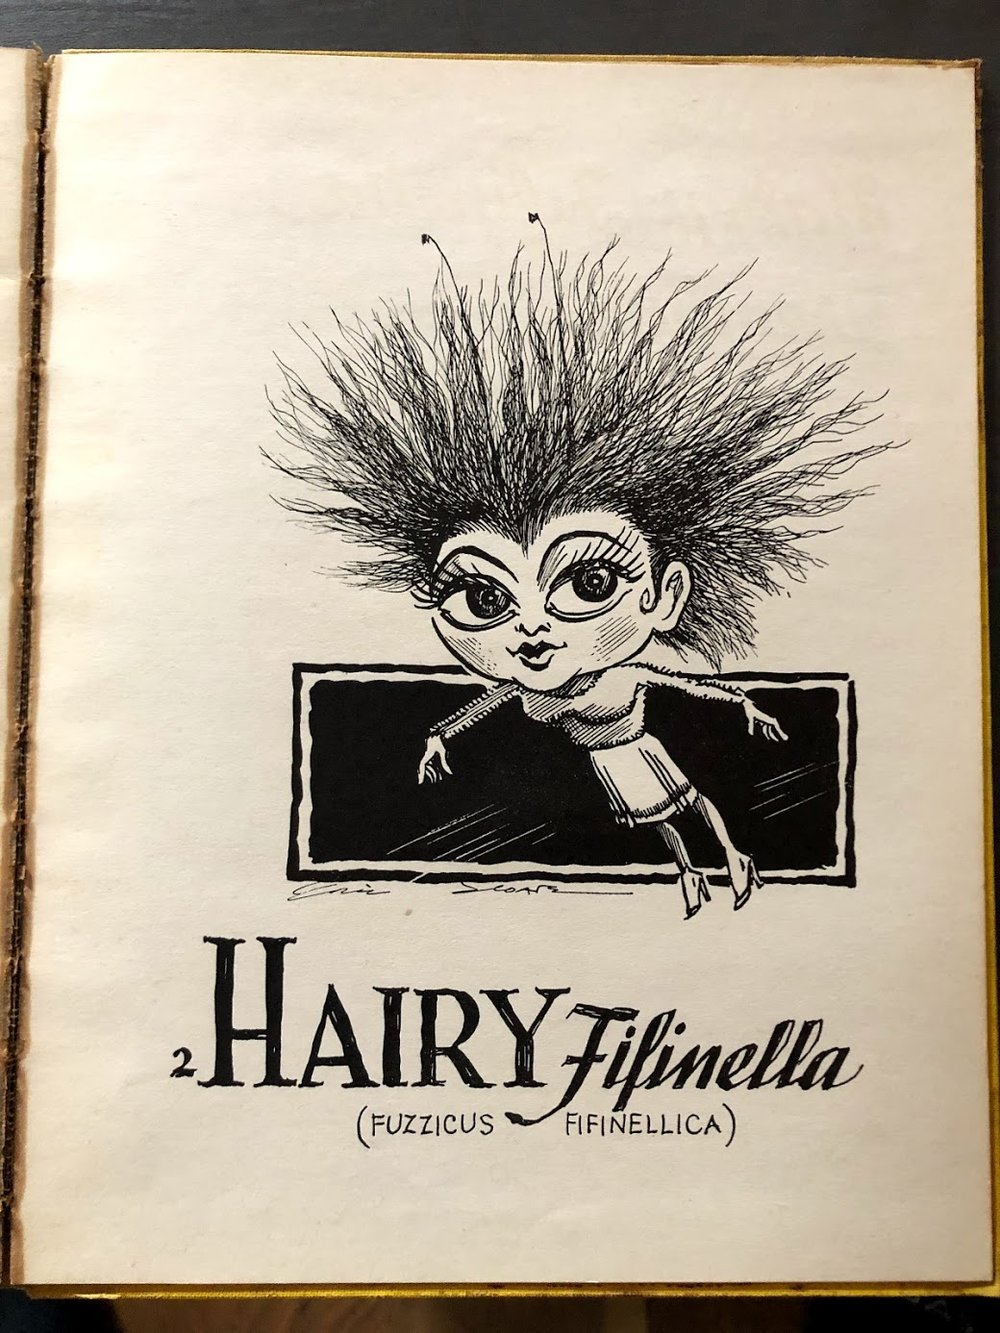 Hairy Fifinella